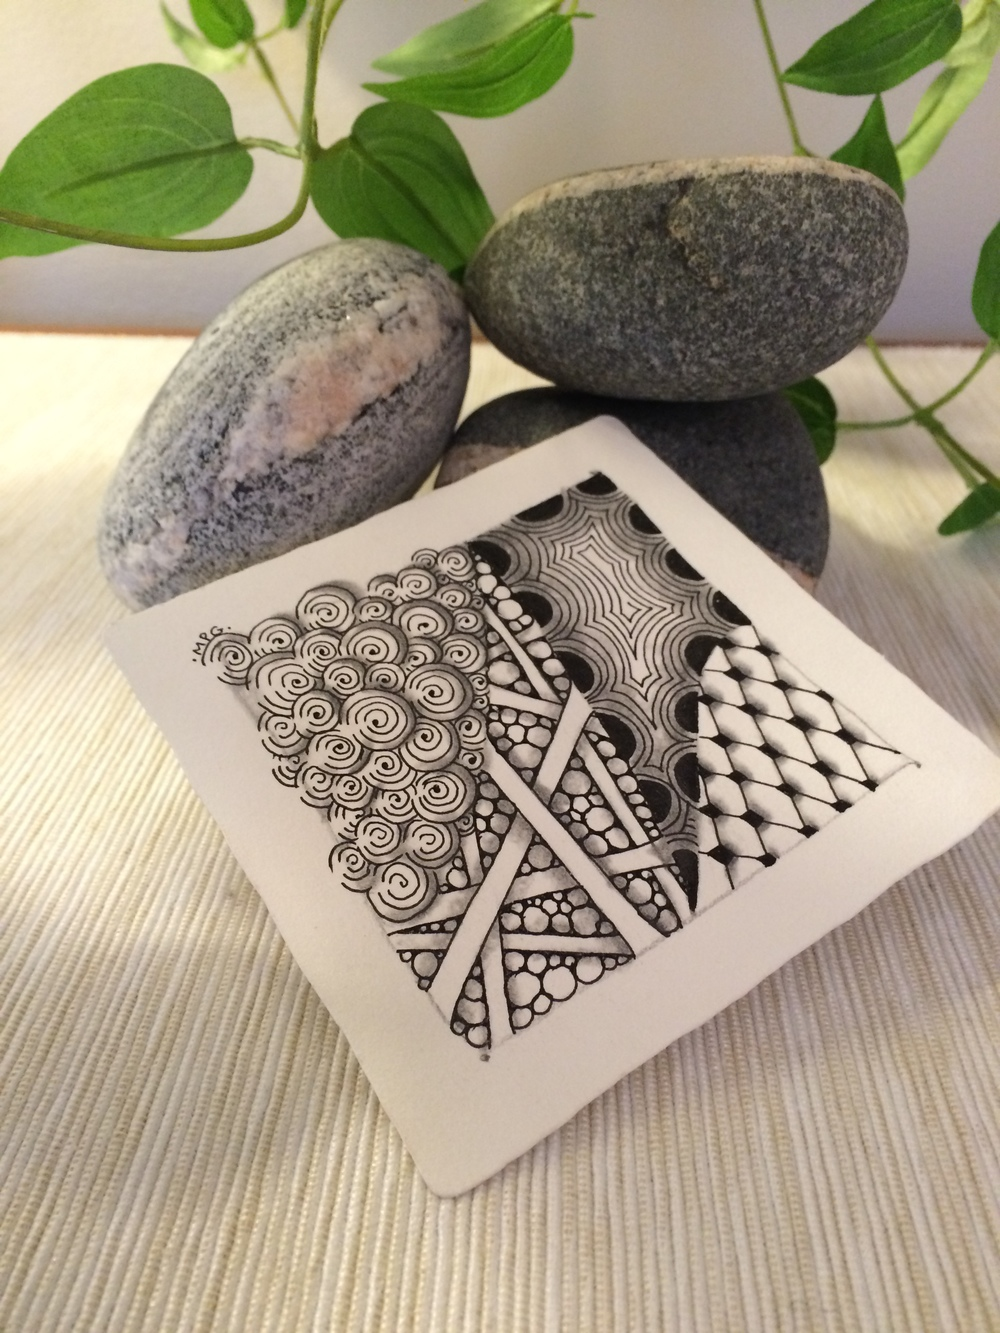 A BEGINNER ZENTANGLE TILE BY BERNADETTE GONZALEZ